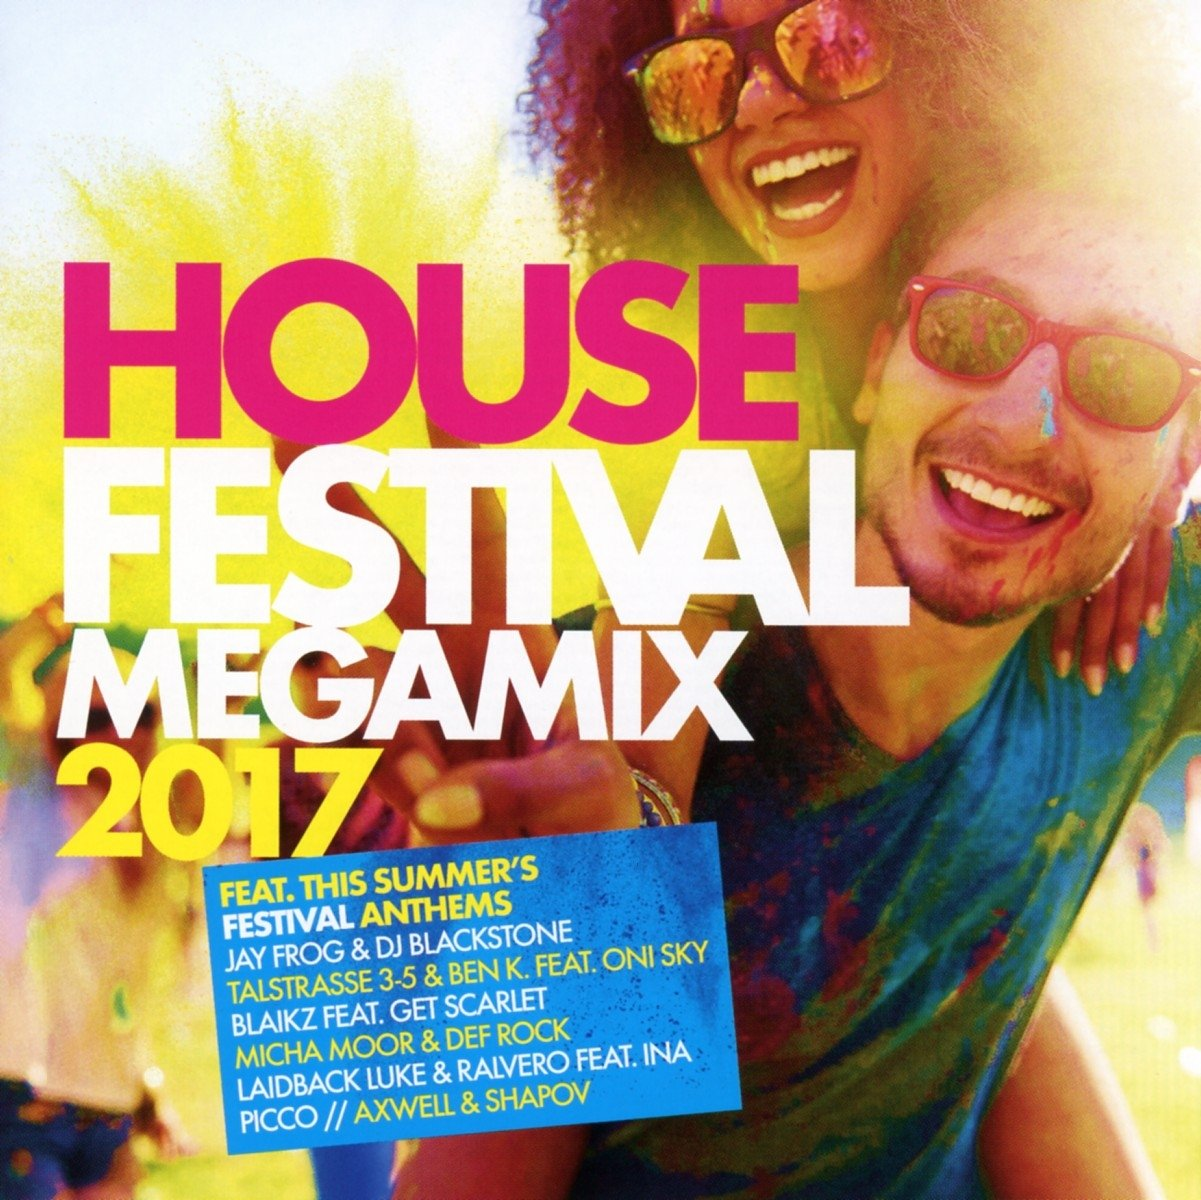 VA - House Festival Megamix 2017 - 2CD - FLAC - 2017 - VOLDiES Download